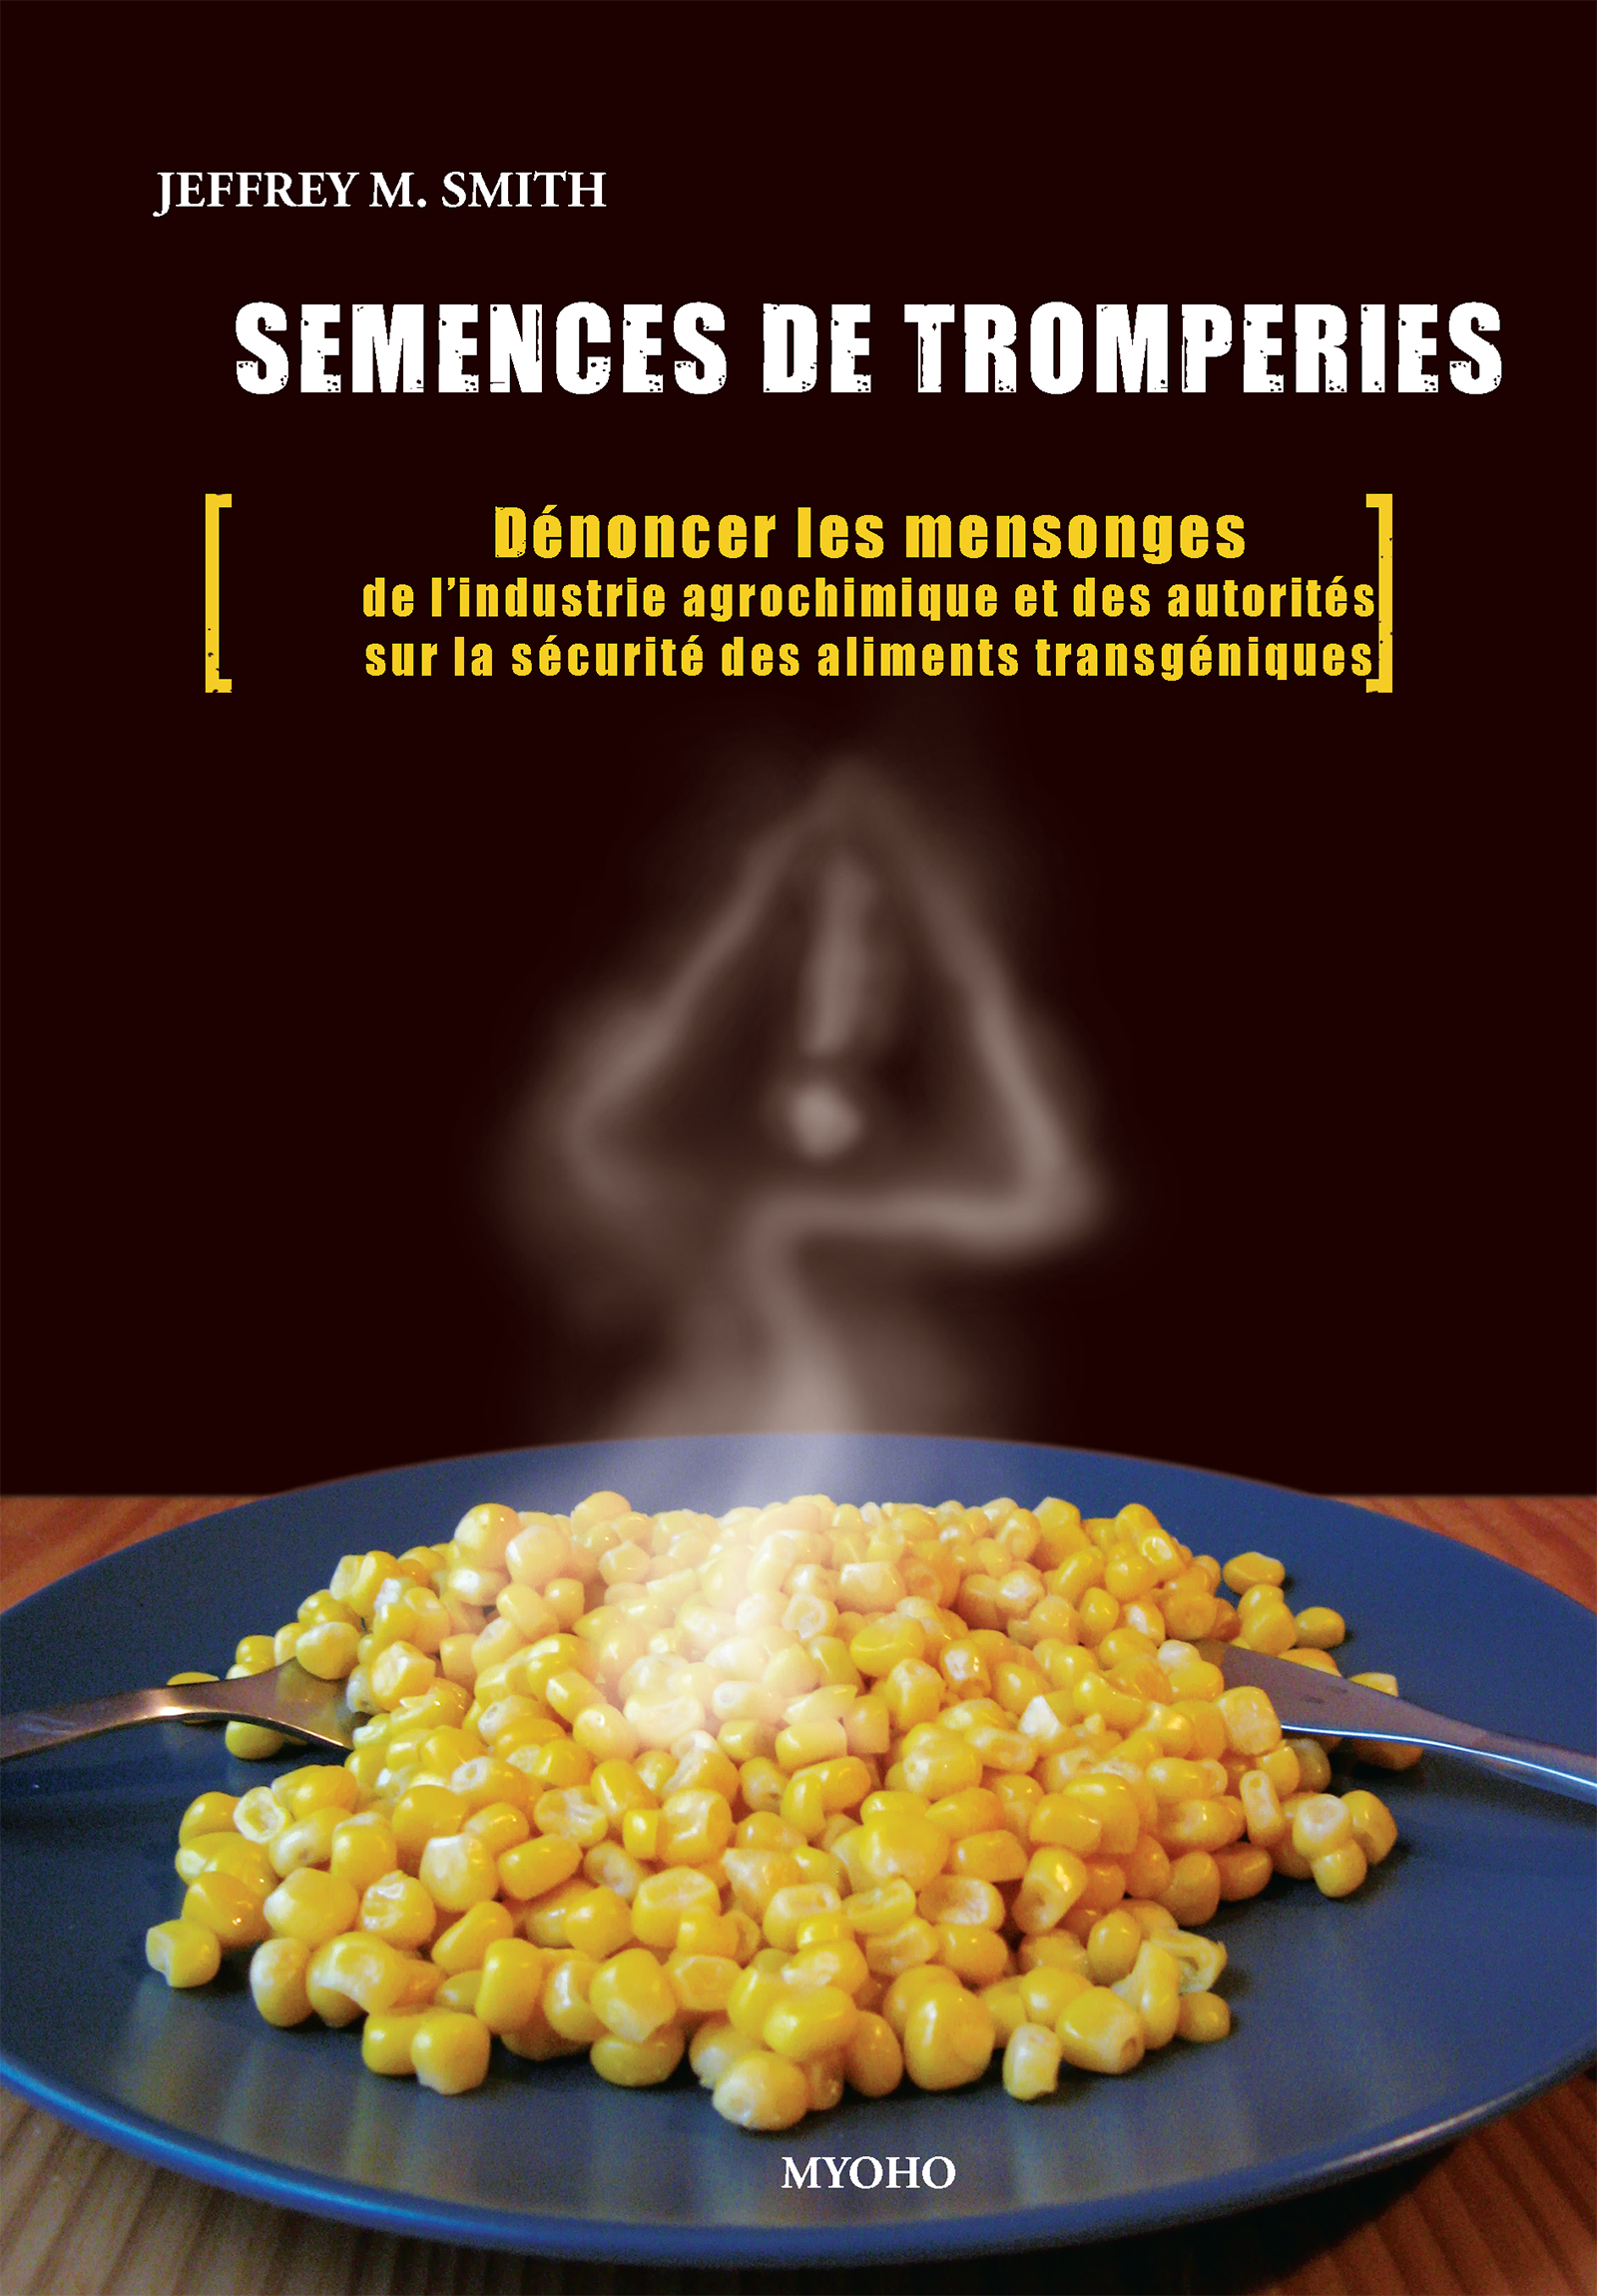 Semences de tromperie